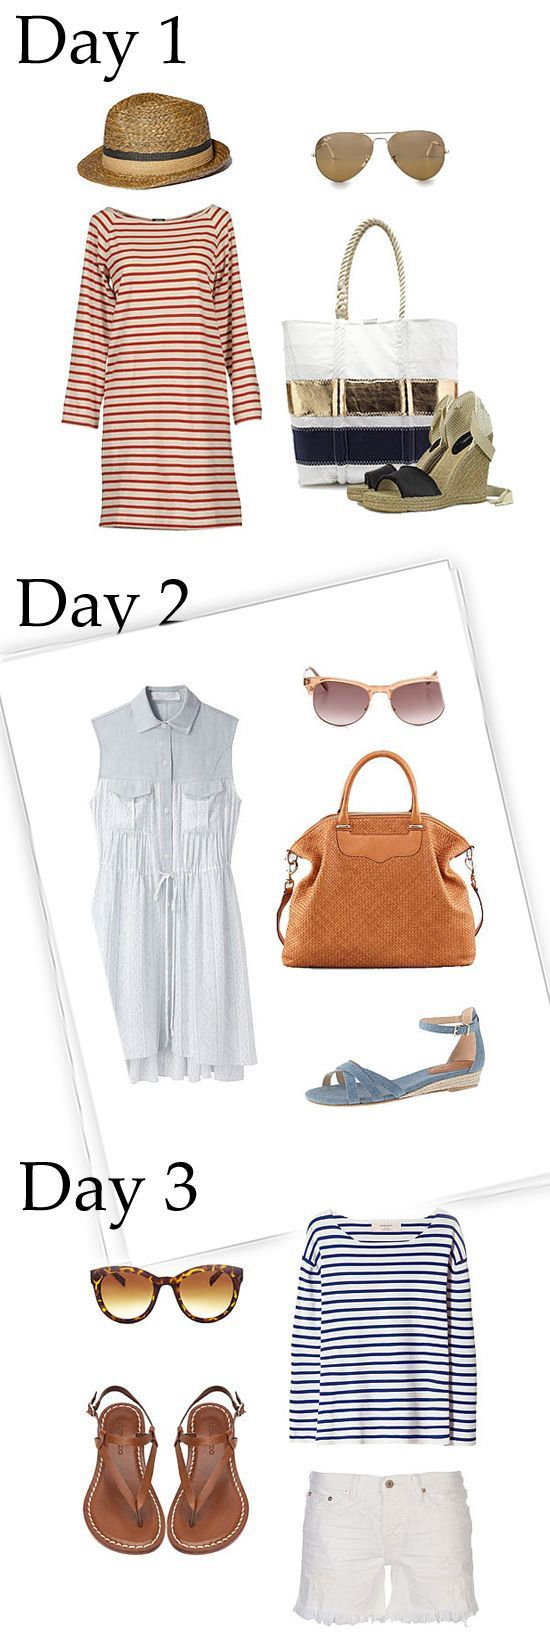 Preppy dresser? We put together 3 perfect outfits for a long weekend in Nantucket, Martha's Vineyard, Kennebunkport, or beyond